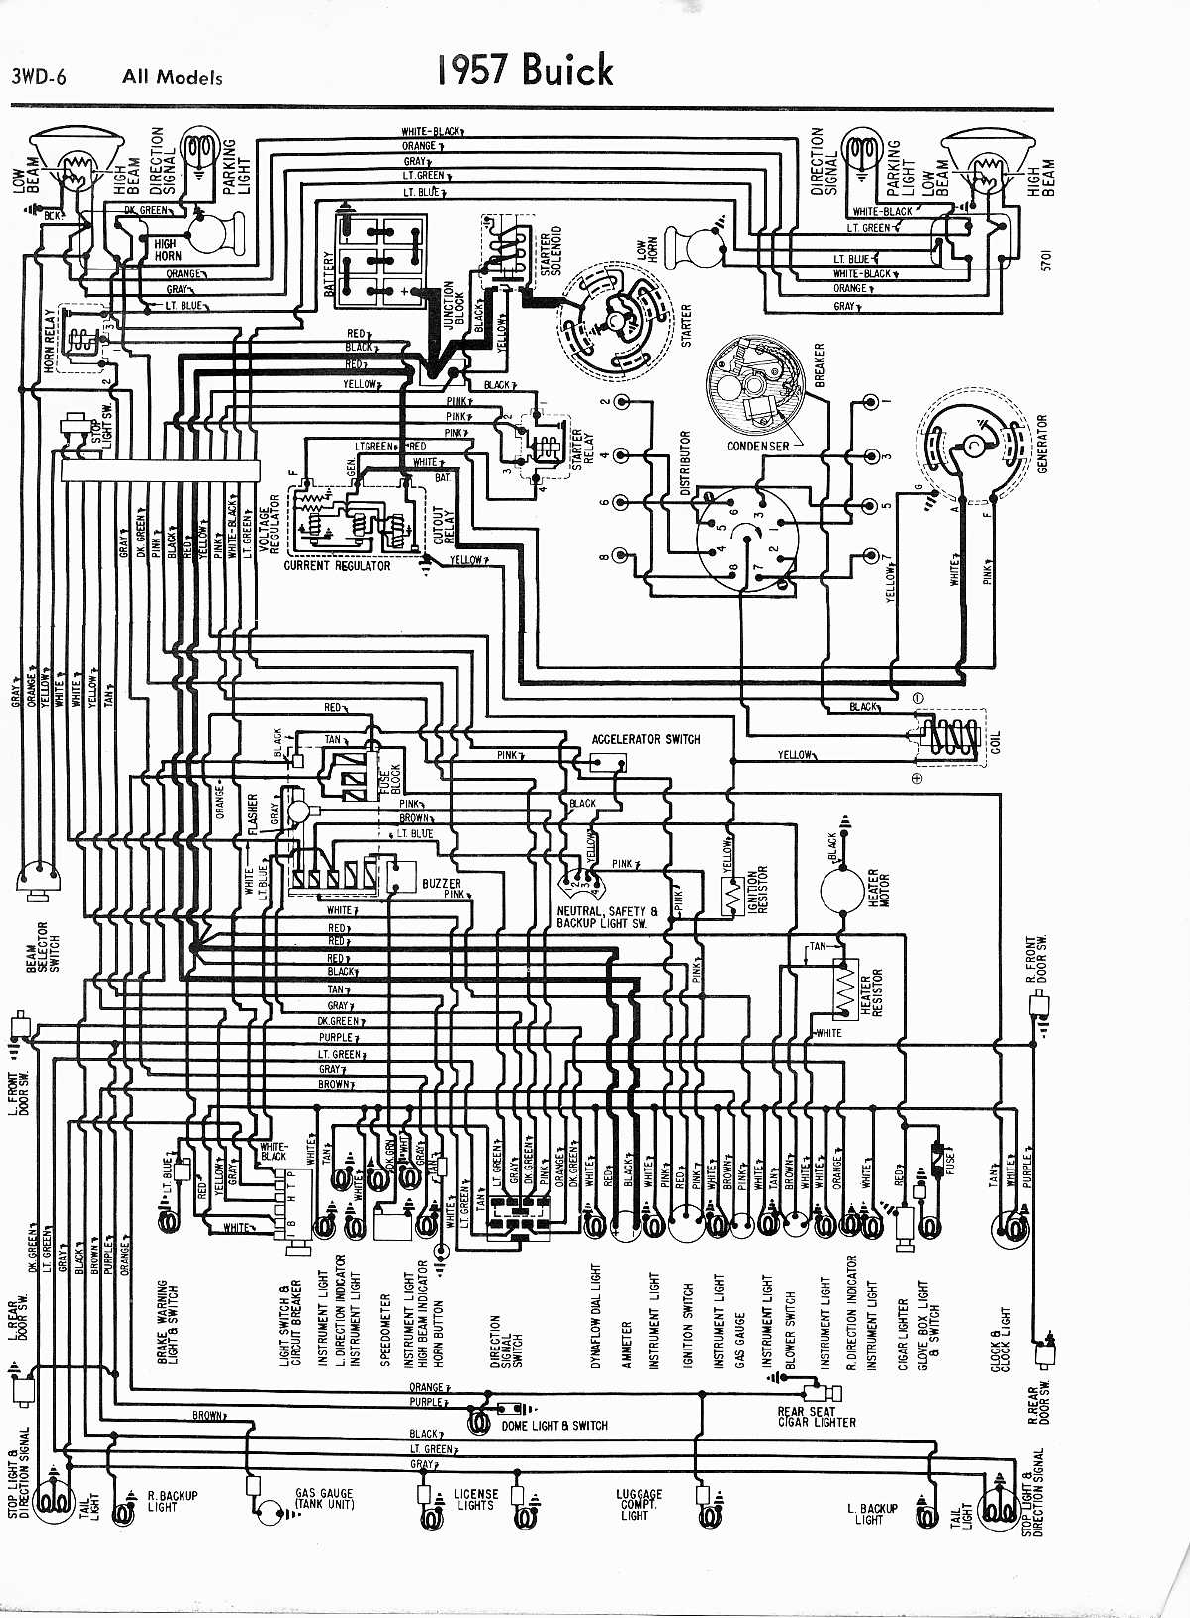 See our other Buick Lucerne Manuals: Buick Lucerne 1957 1960 Misc Documents Wiring  Diagrams